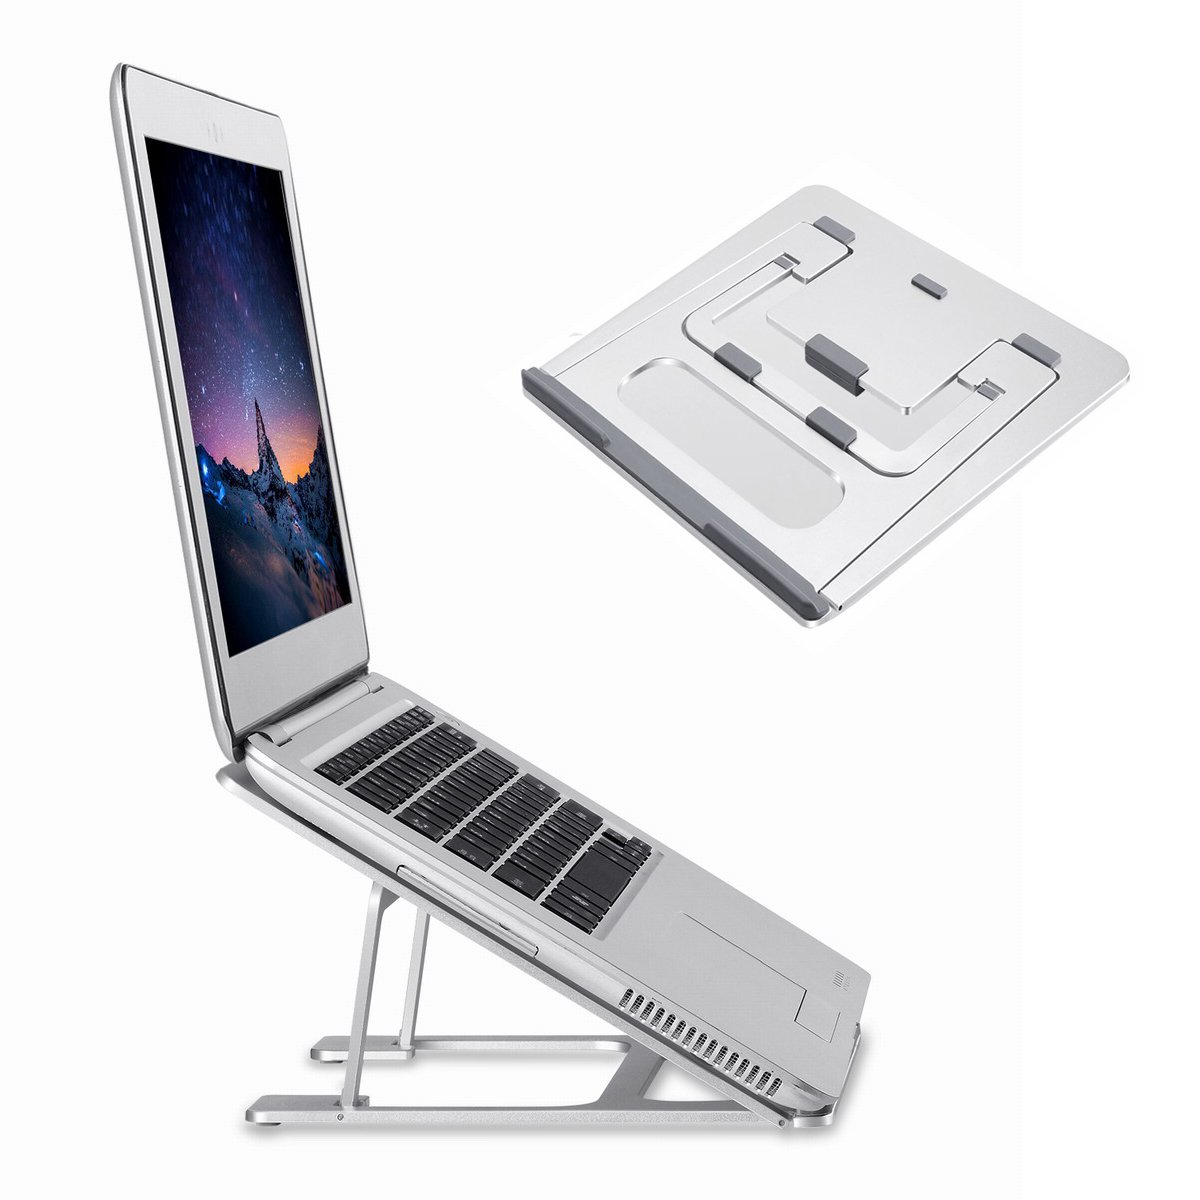 "Folding Aluminum Macbook Stand HONGUO Universal 6 Angles Adjustable Desktop Ventilated Laptop Stand for 7-15"" Notebook/ iPad / Tablets (For Slim Laptops Only)"